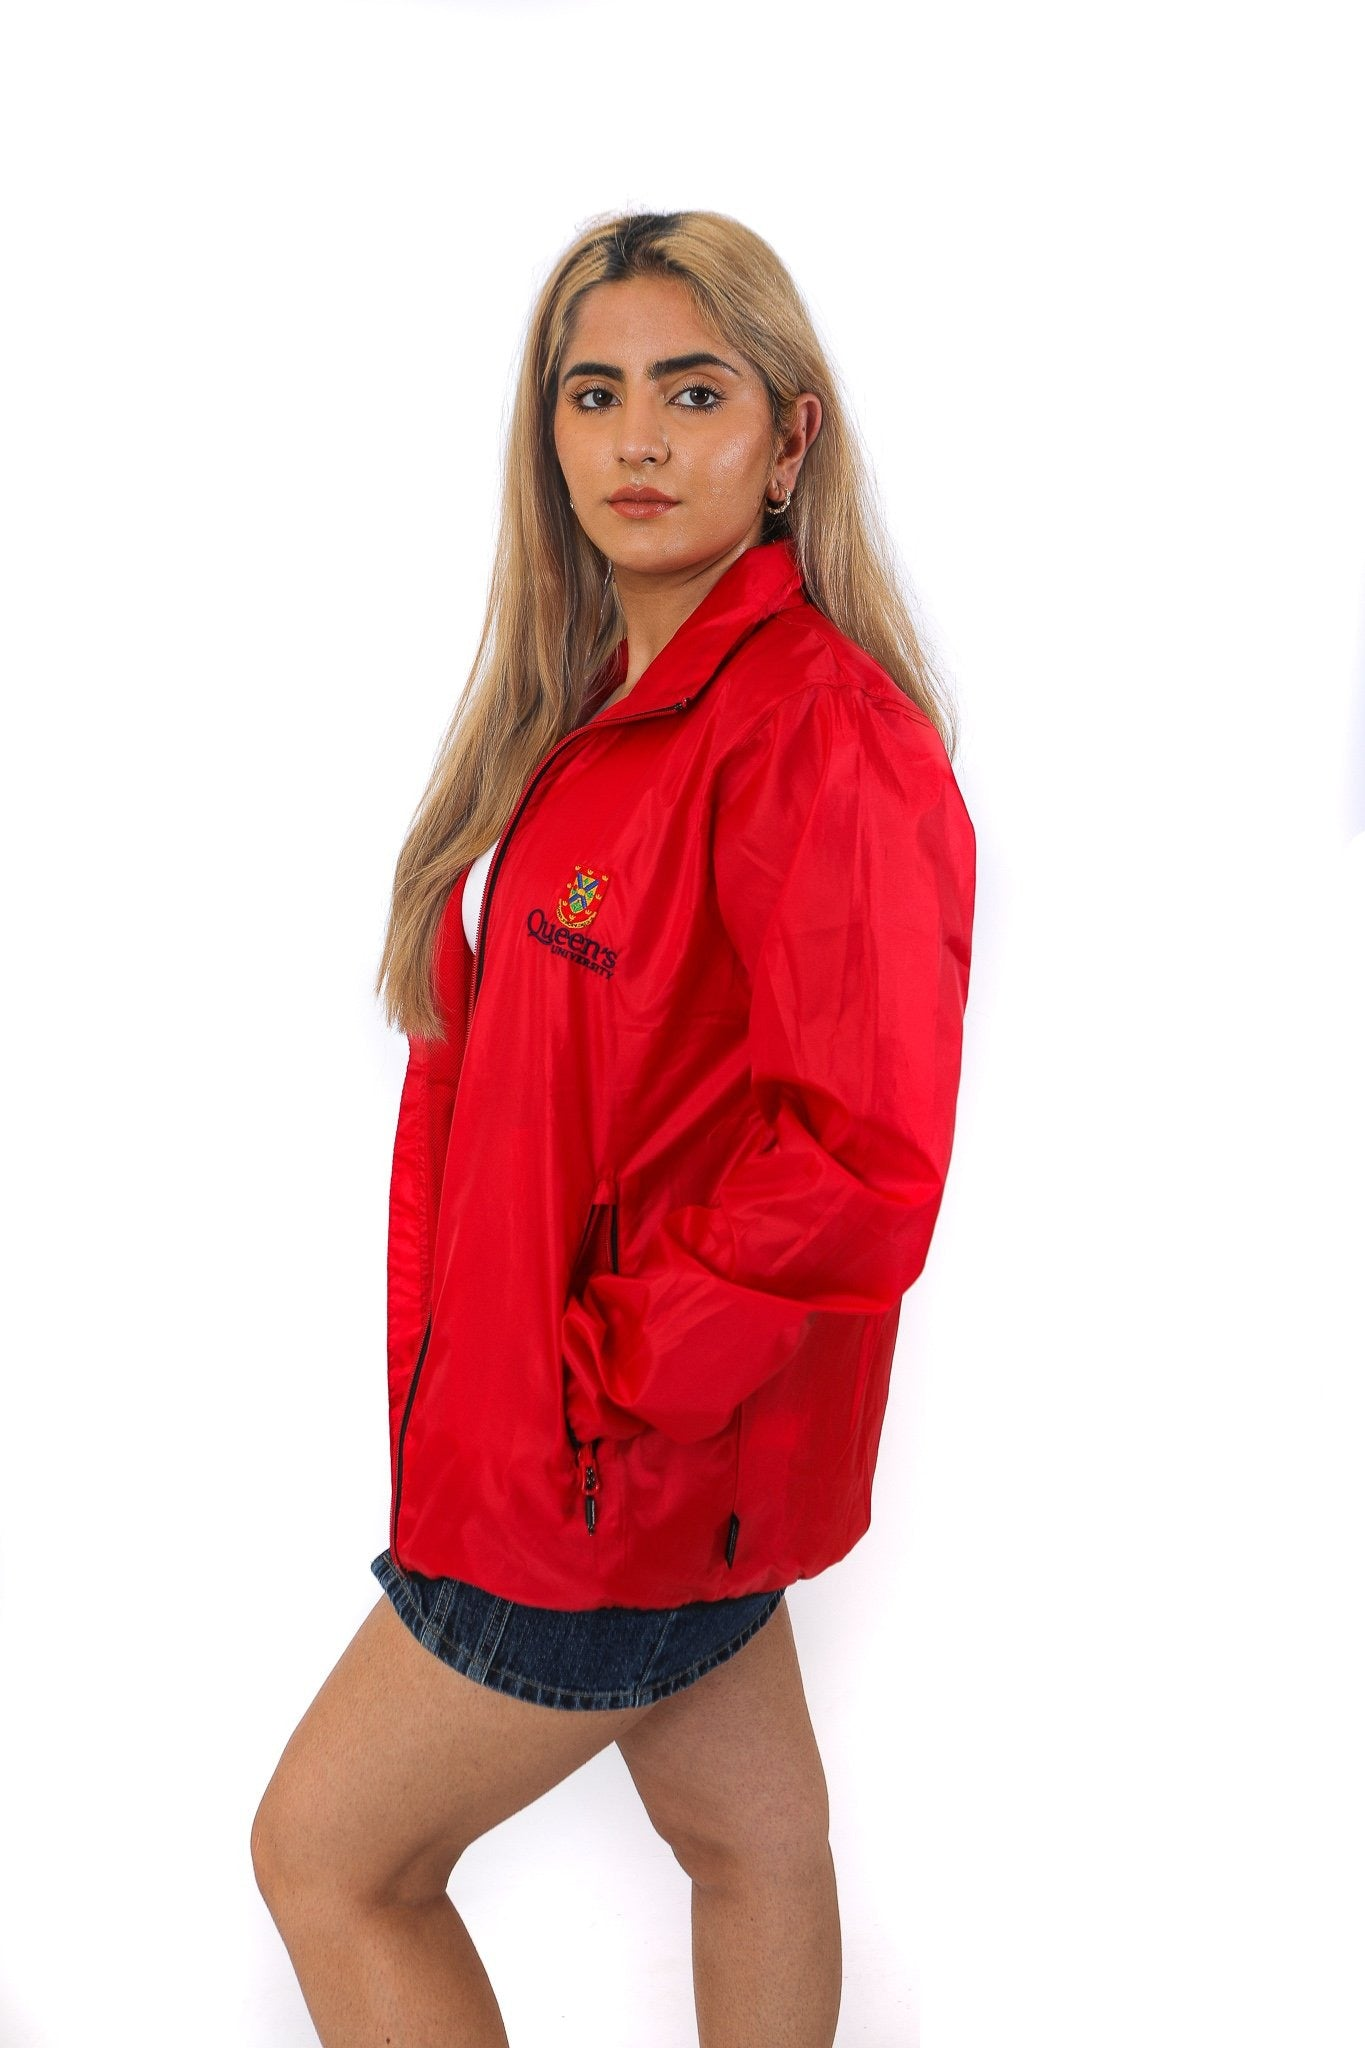 Side of red zip up rain jacket with red Queen's crest logo